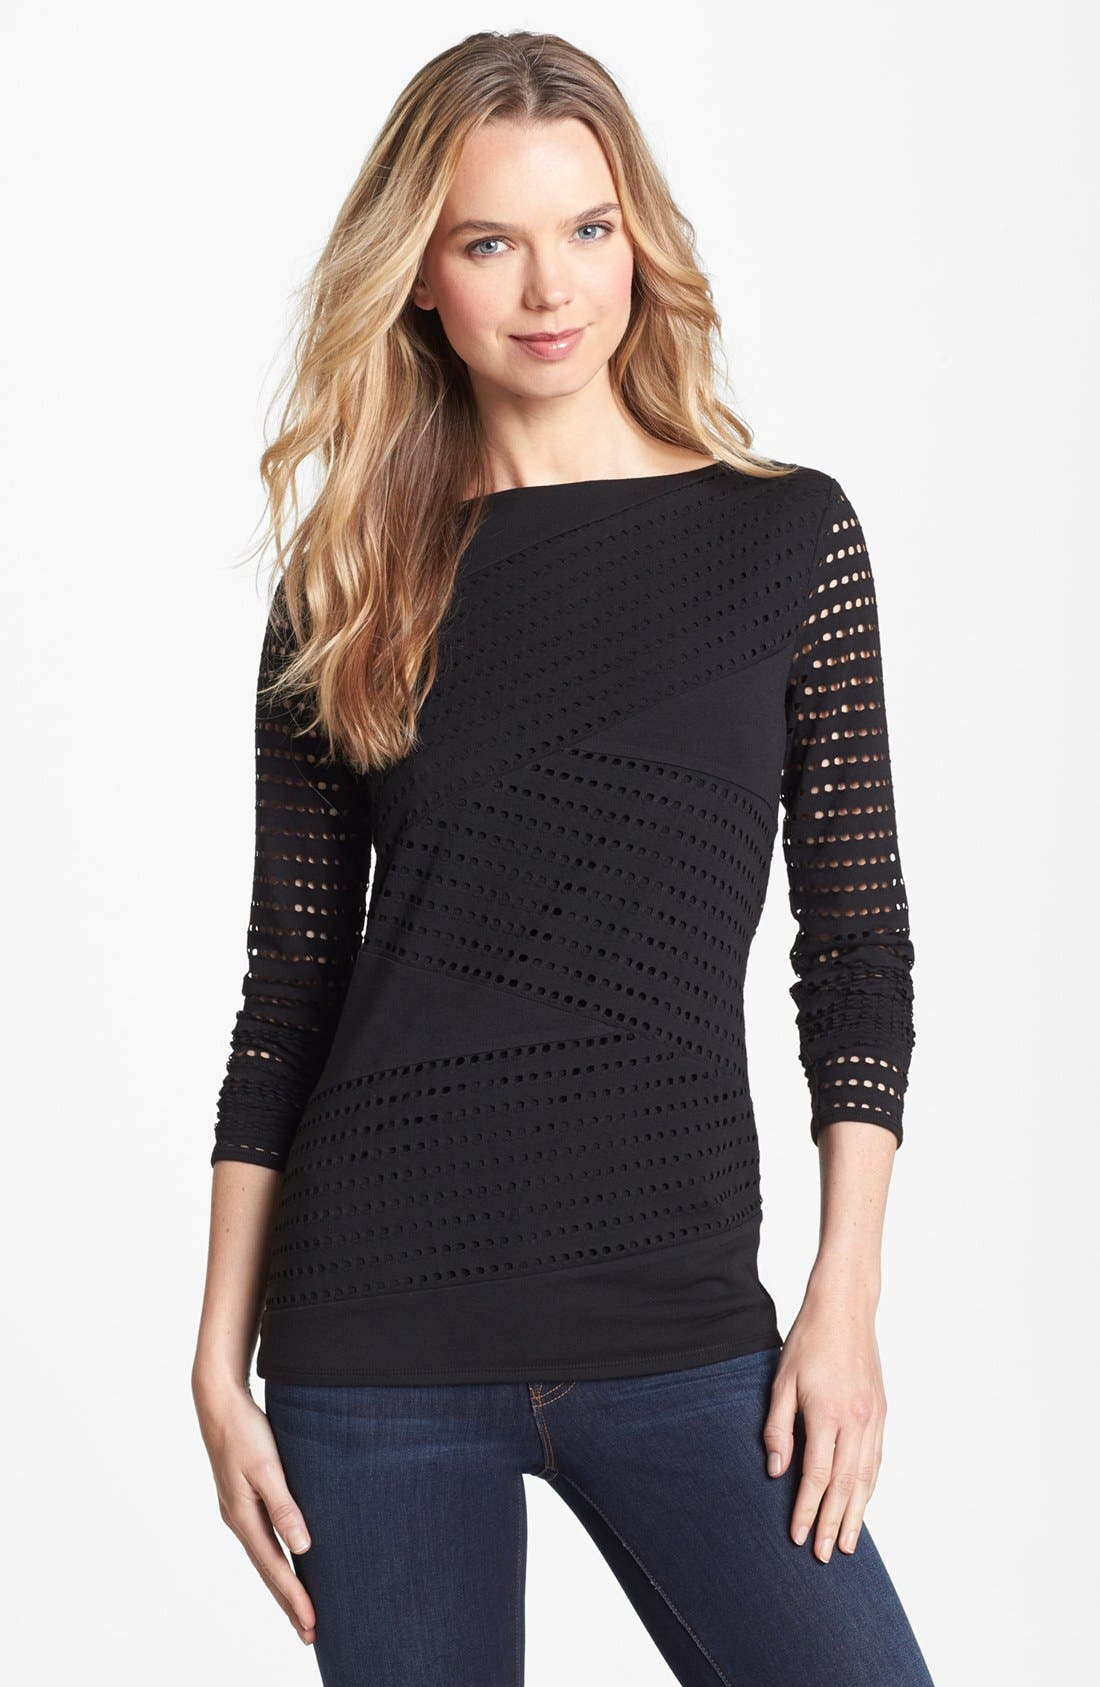 Alternate Image 1 Selected - Vince Camuto Perforated Zigzag Top (Petite)